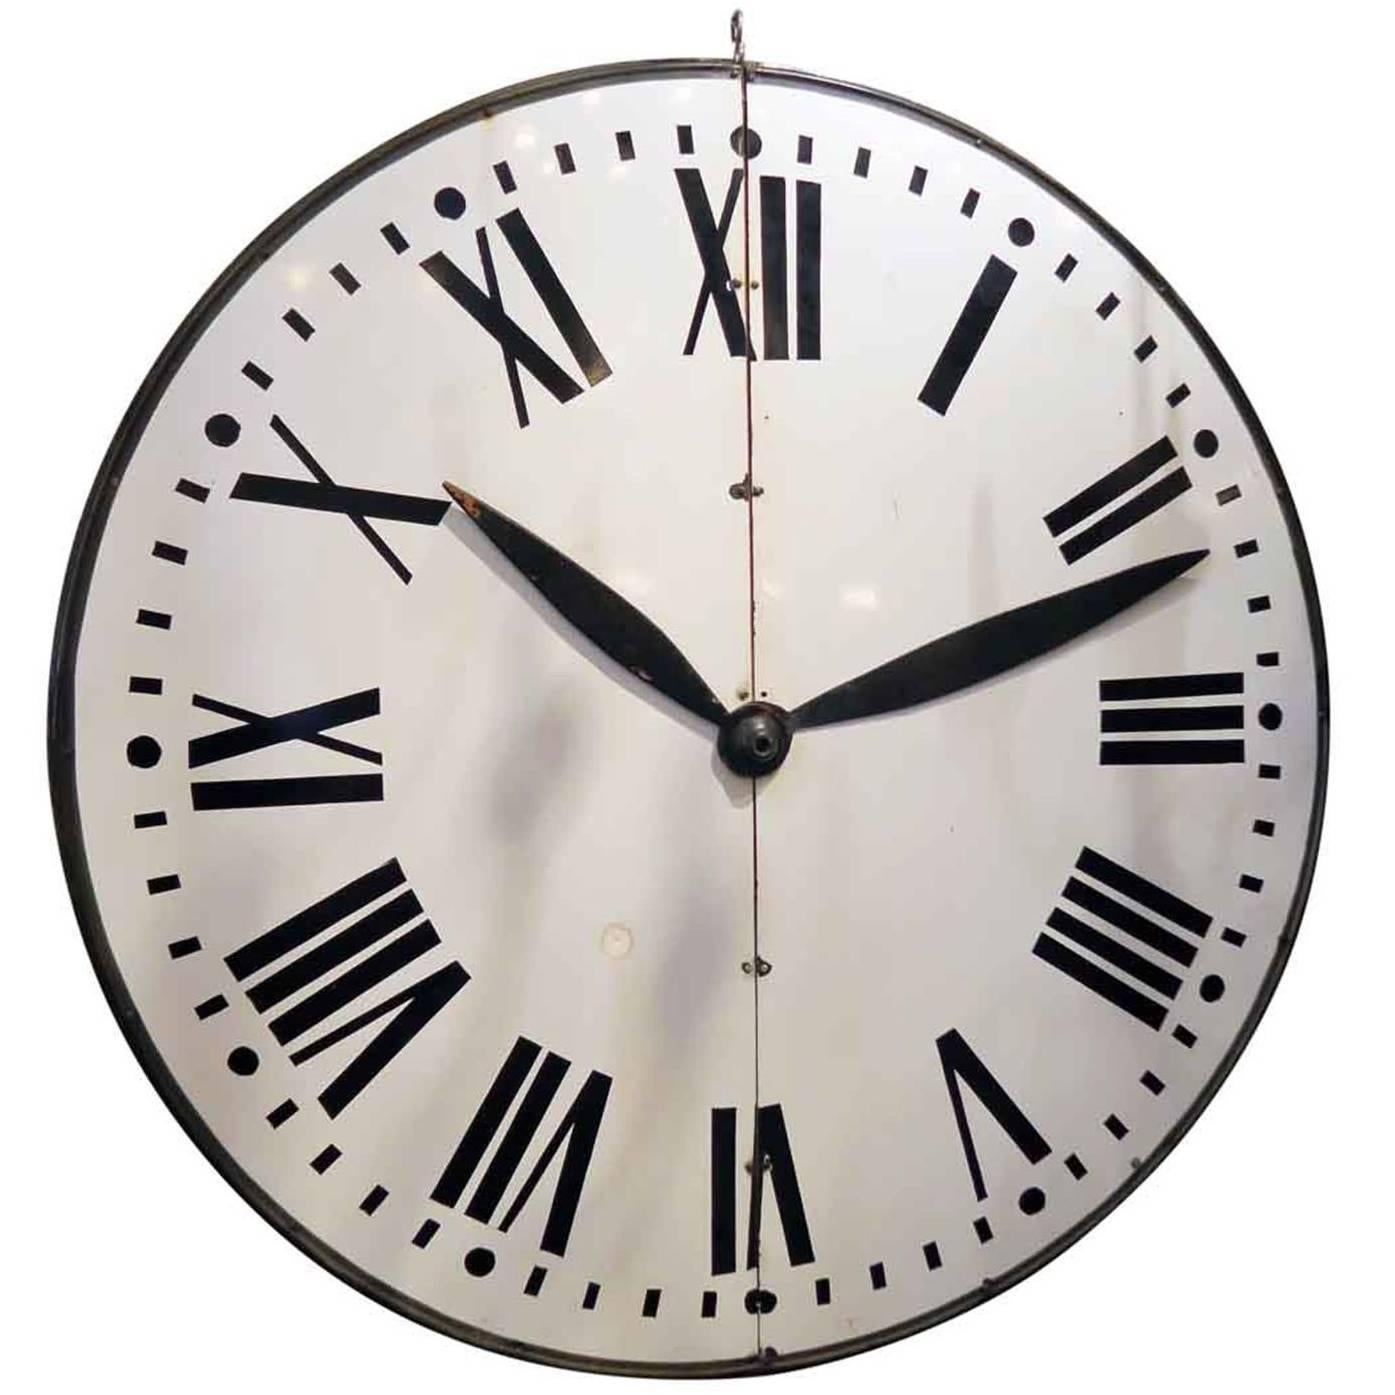 1910s Large White Enamel Steel Clock Face with Wooden Hands and Roman Numerals